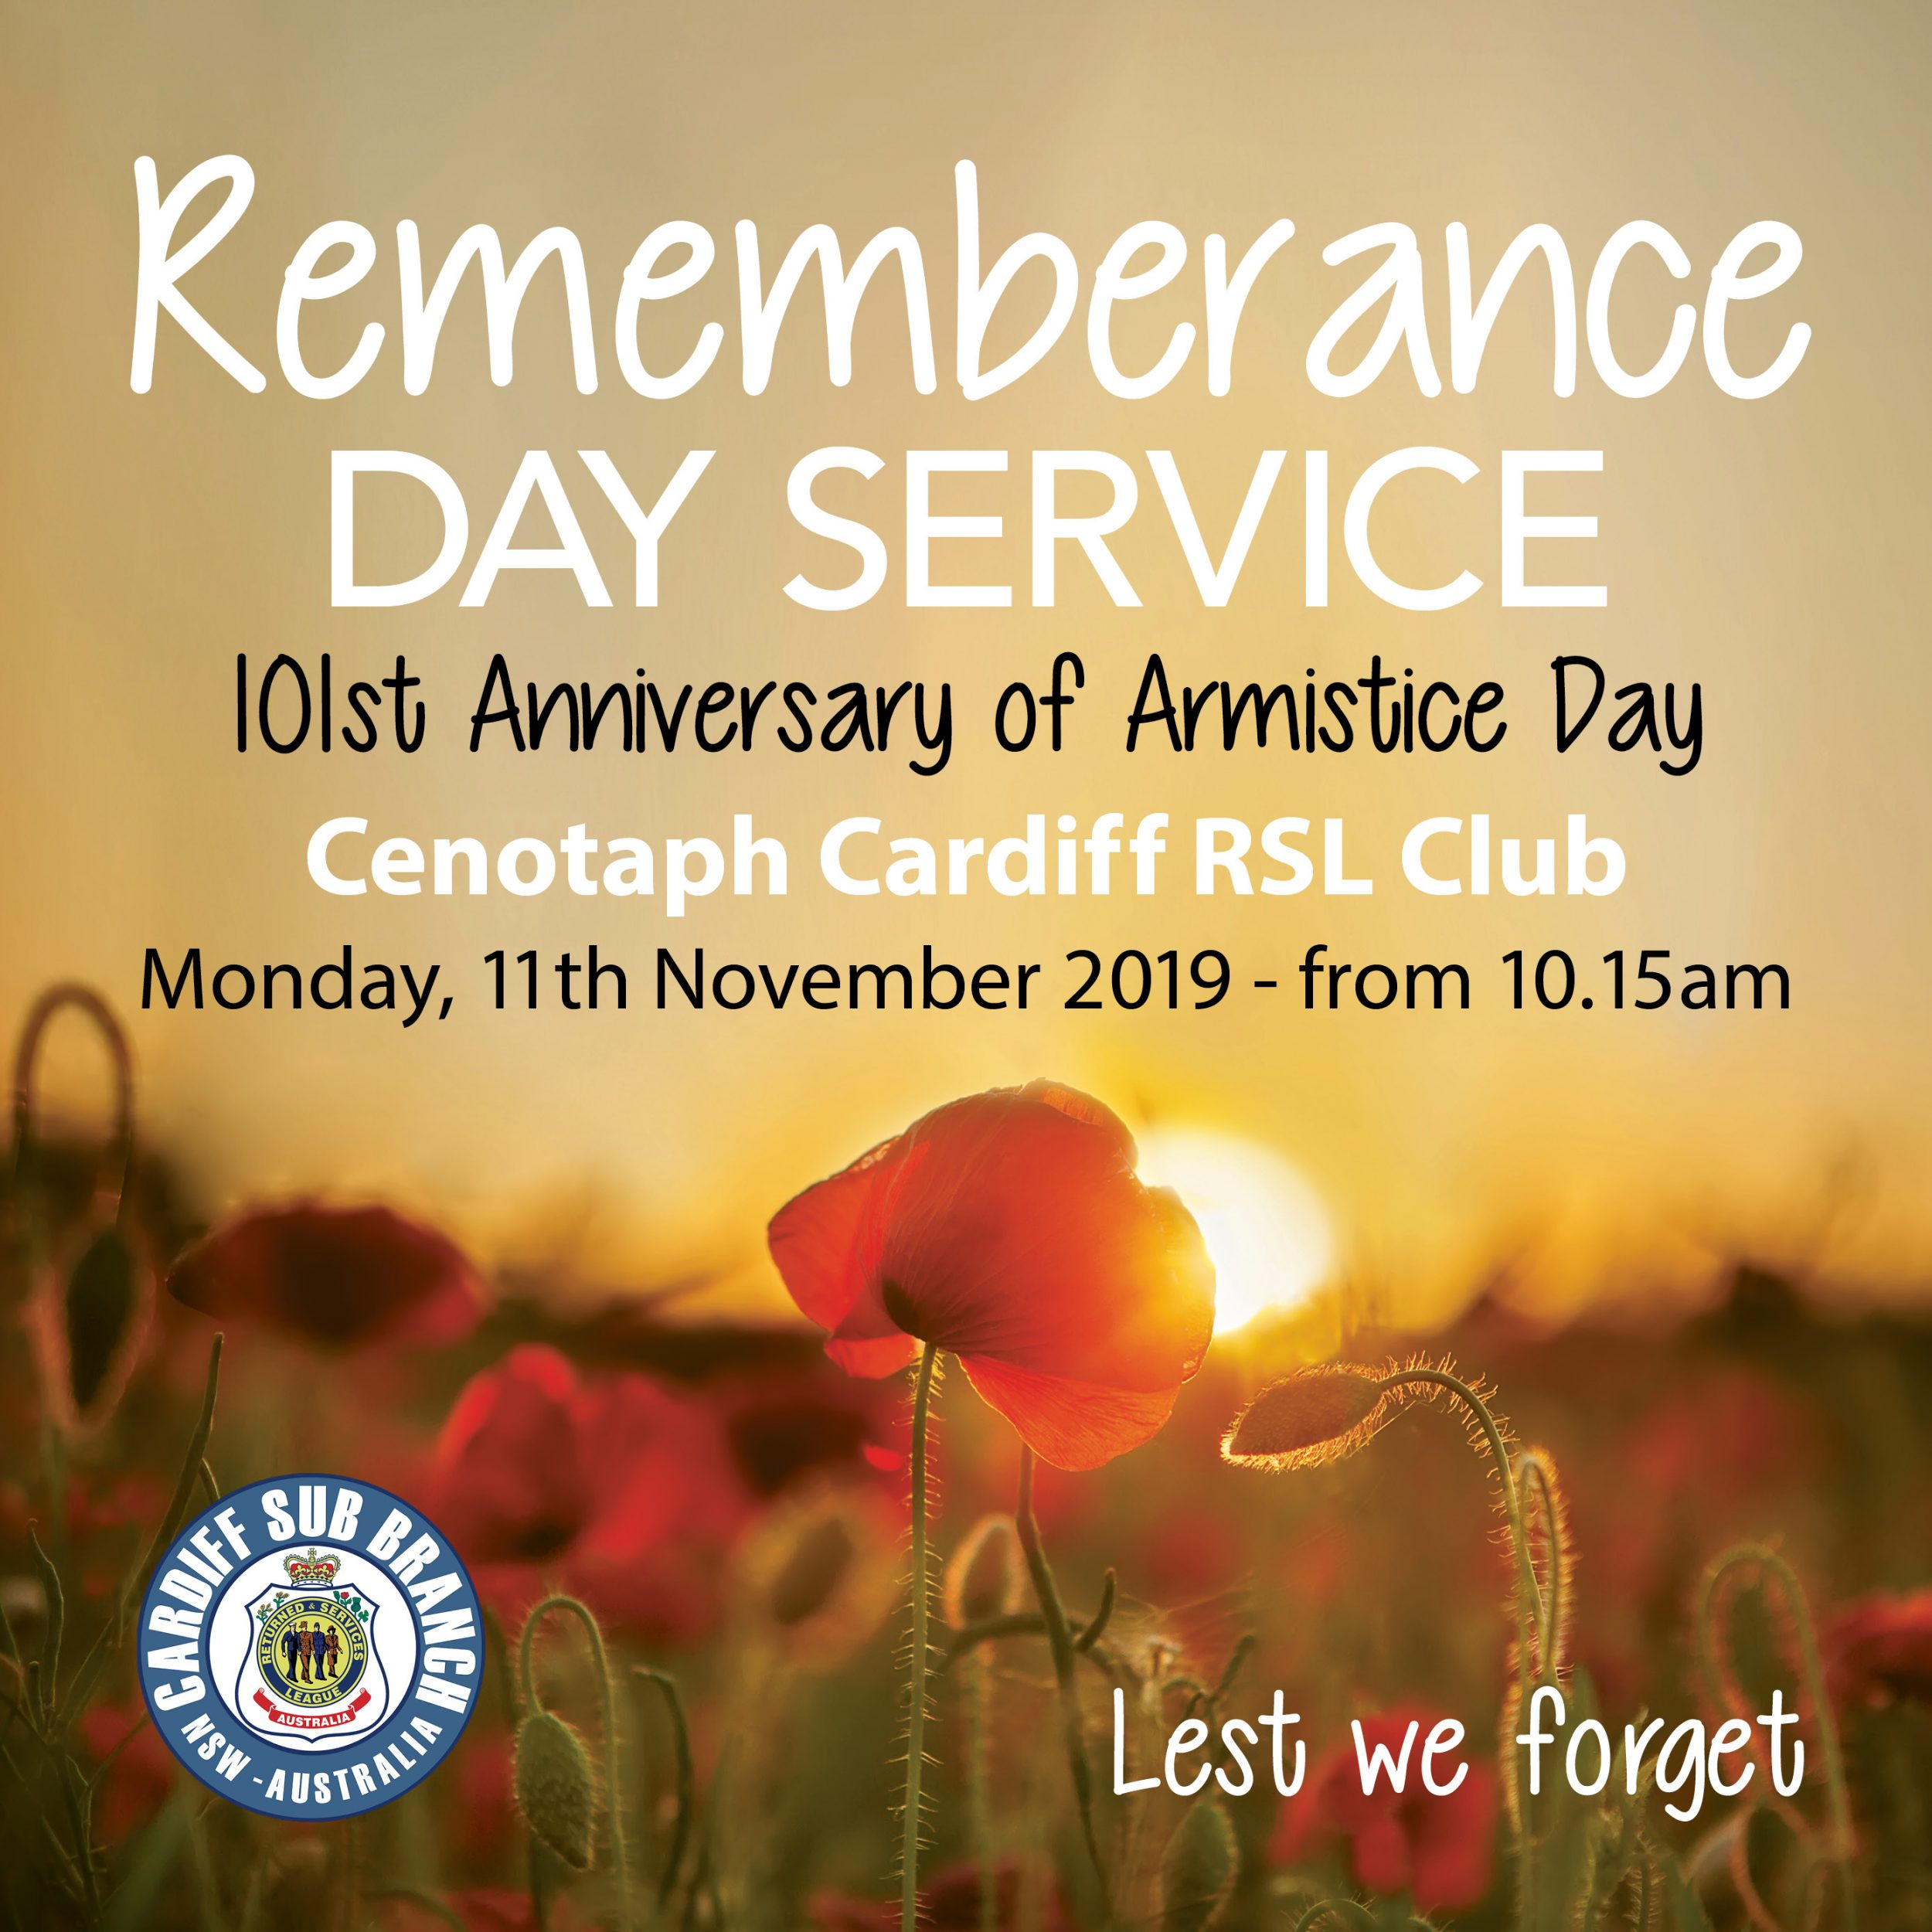 CARDIFF RSL REMEMBRANCE DAY